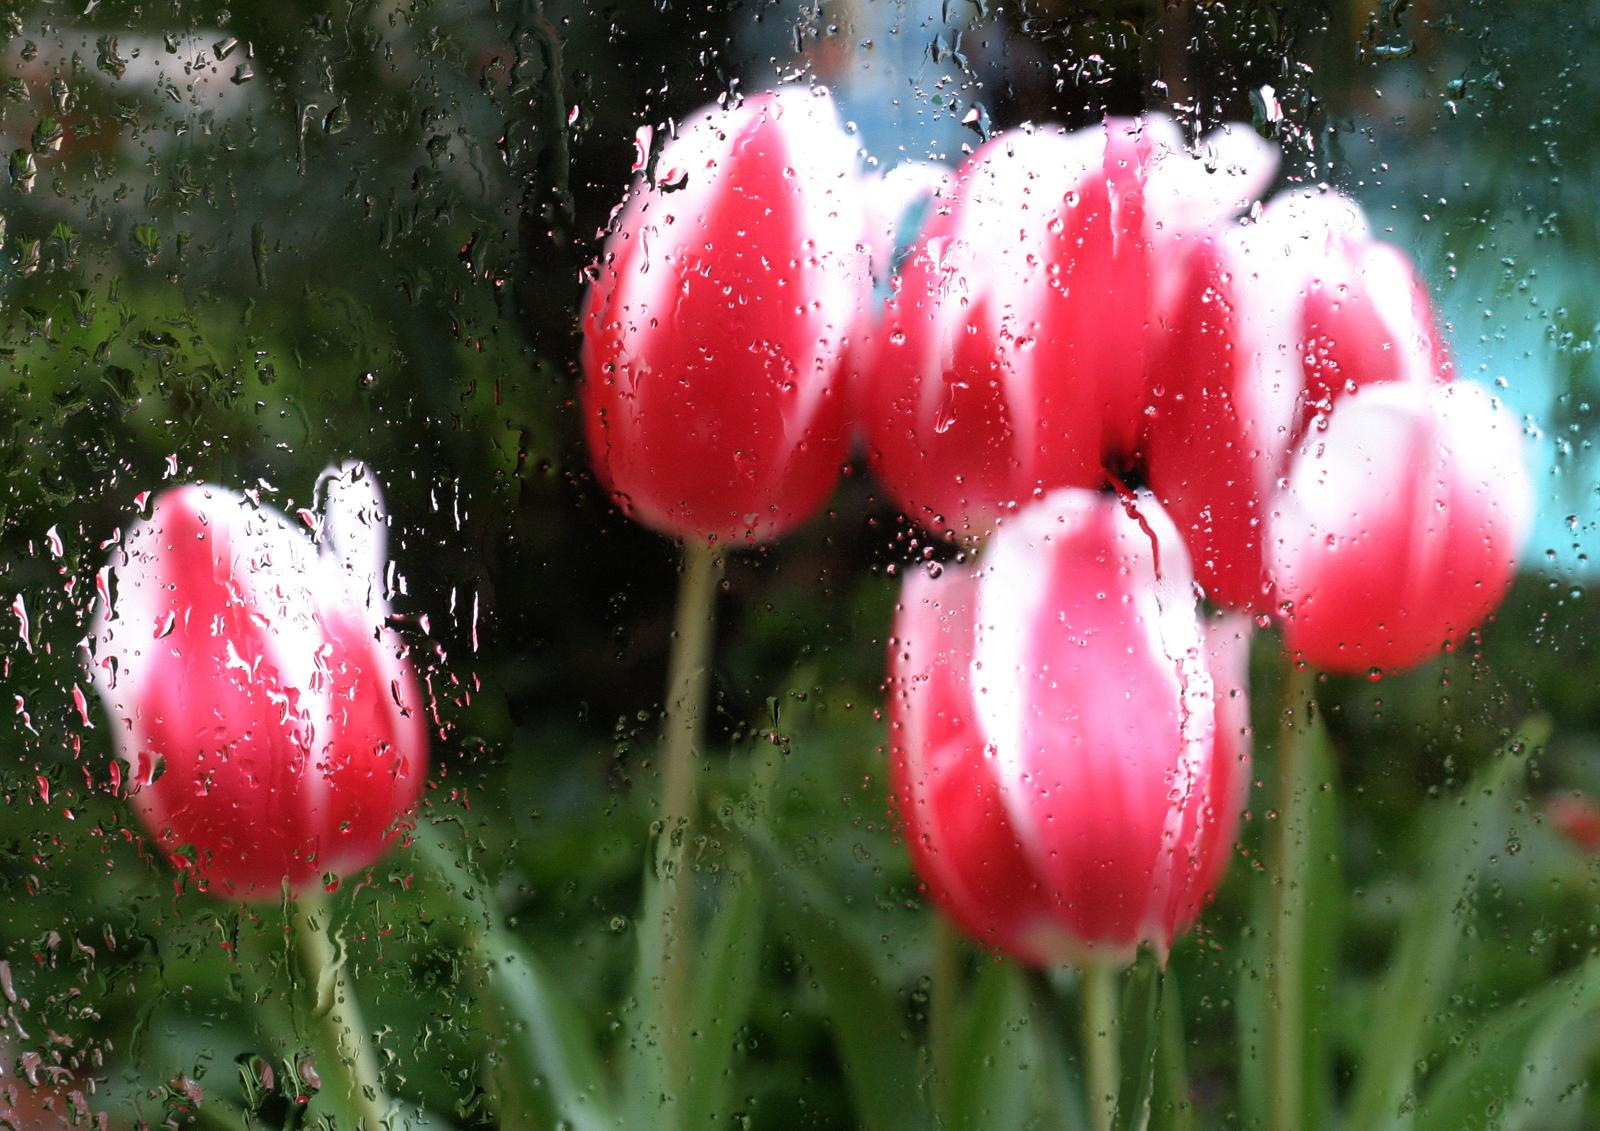 APRIL SHOWERs BRING MAY FLOWERS APRIL POEMS BRING MAY PODCASTS